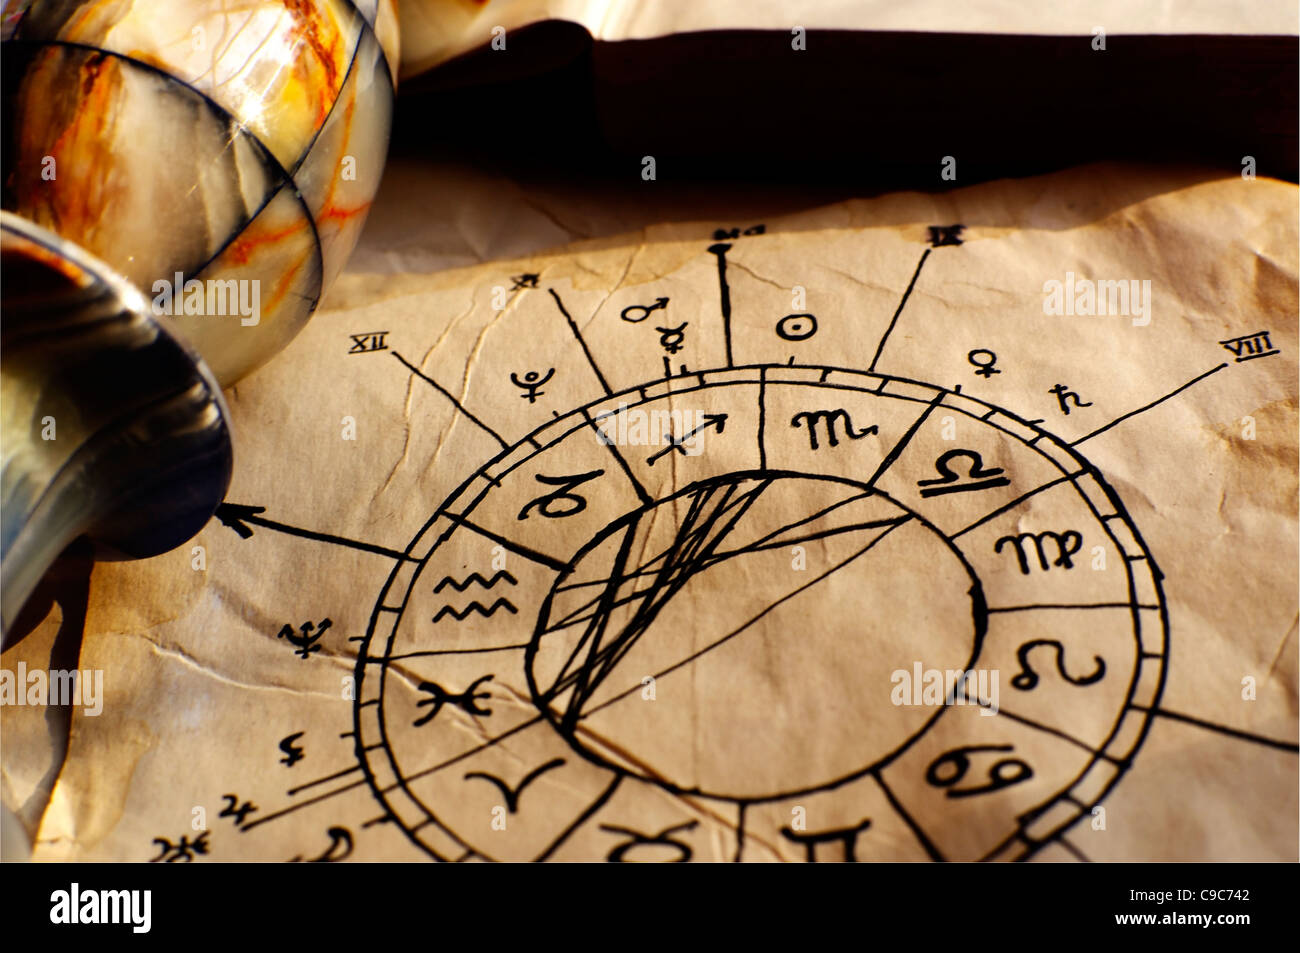 Ancient, hand-drawn horoscope with zodiac signs - Stock Image